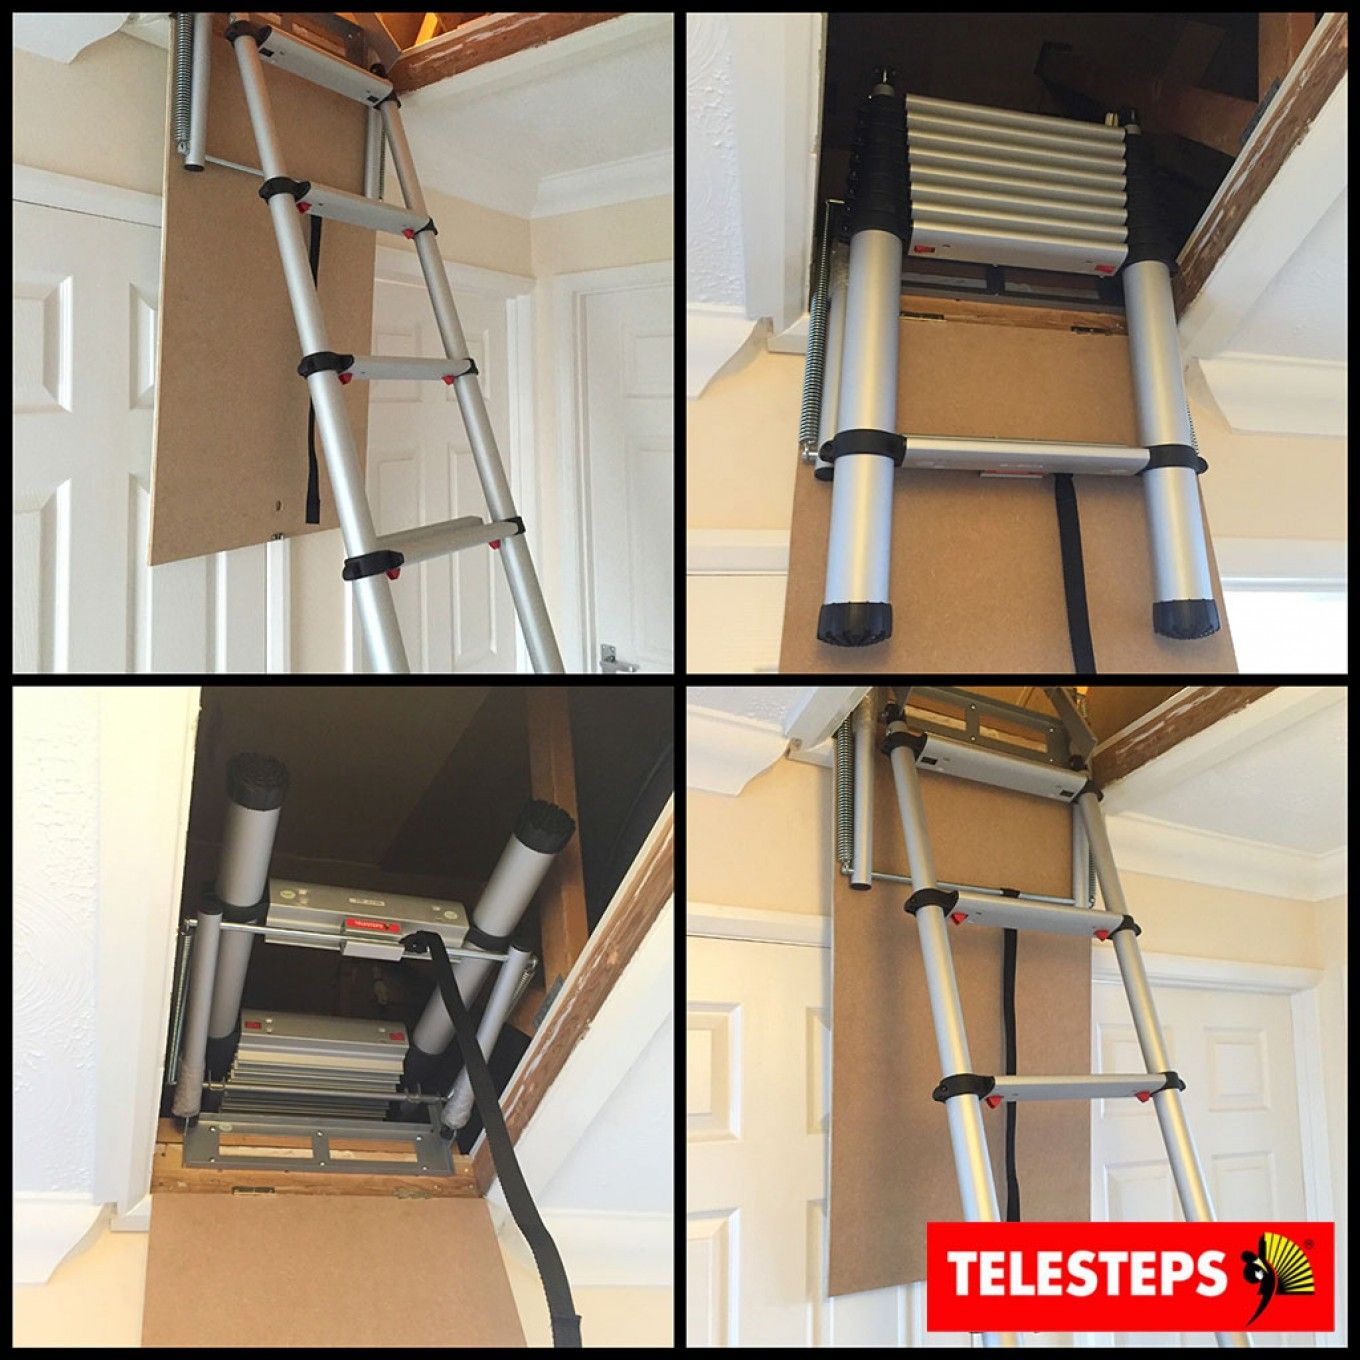 Telesteps 60324 Telescopic Loft Ladder For Small Hatch Sizes Attic Renovation Loft Ladder Attic Ladder